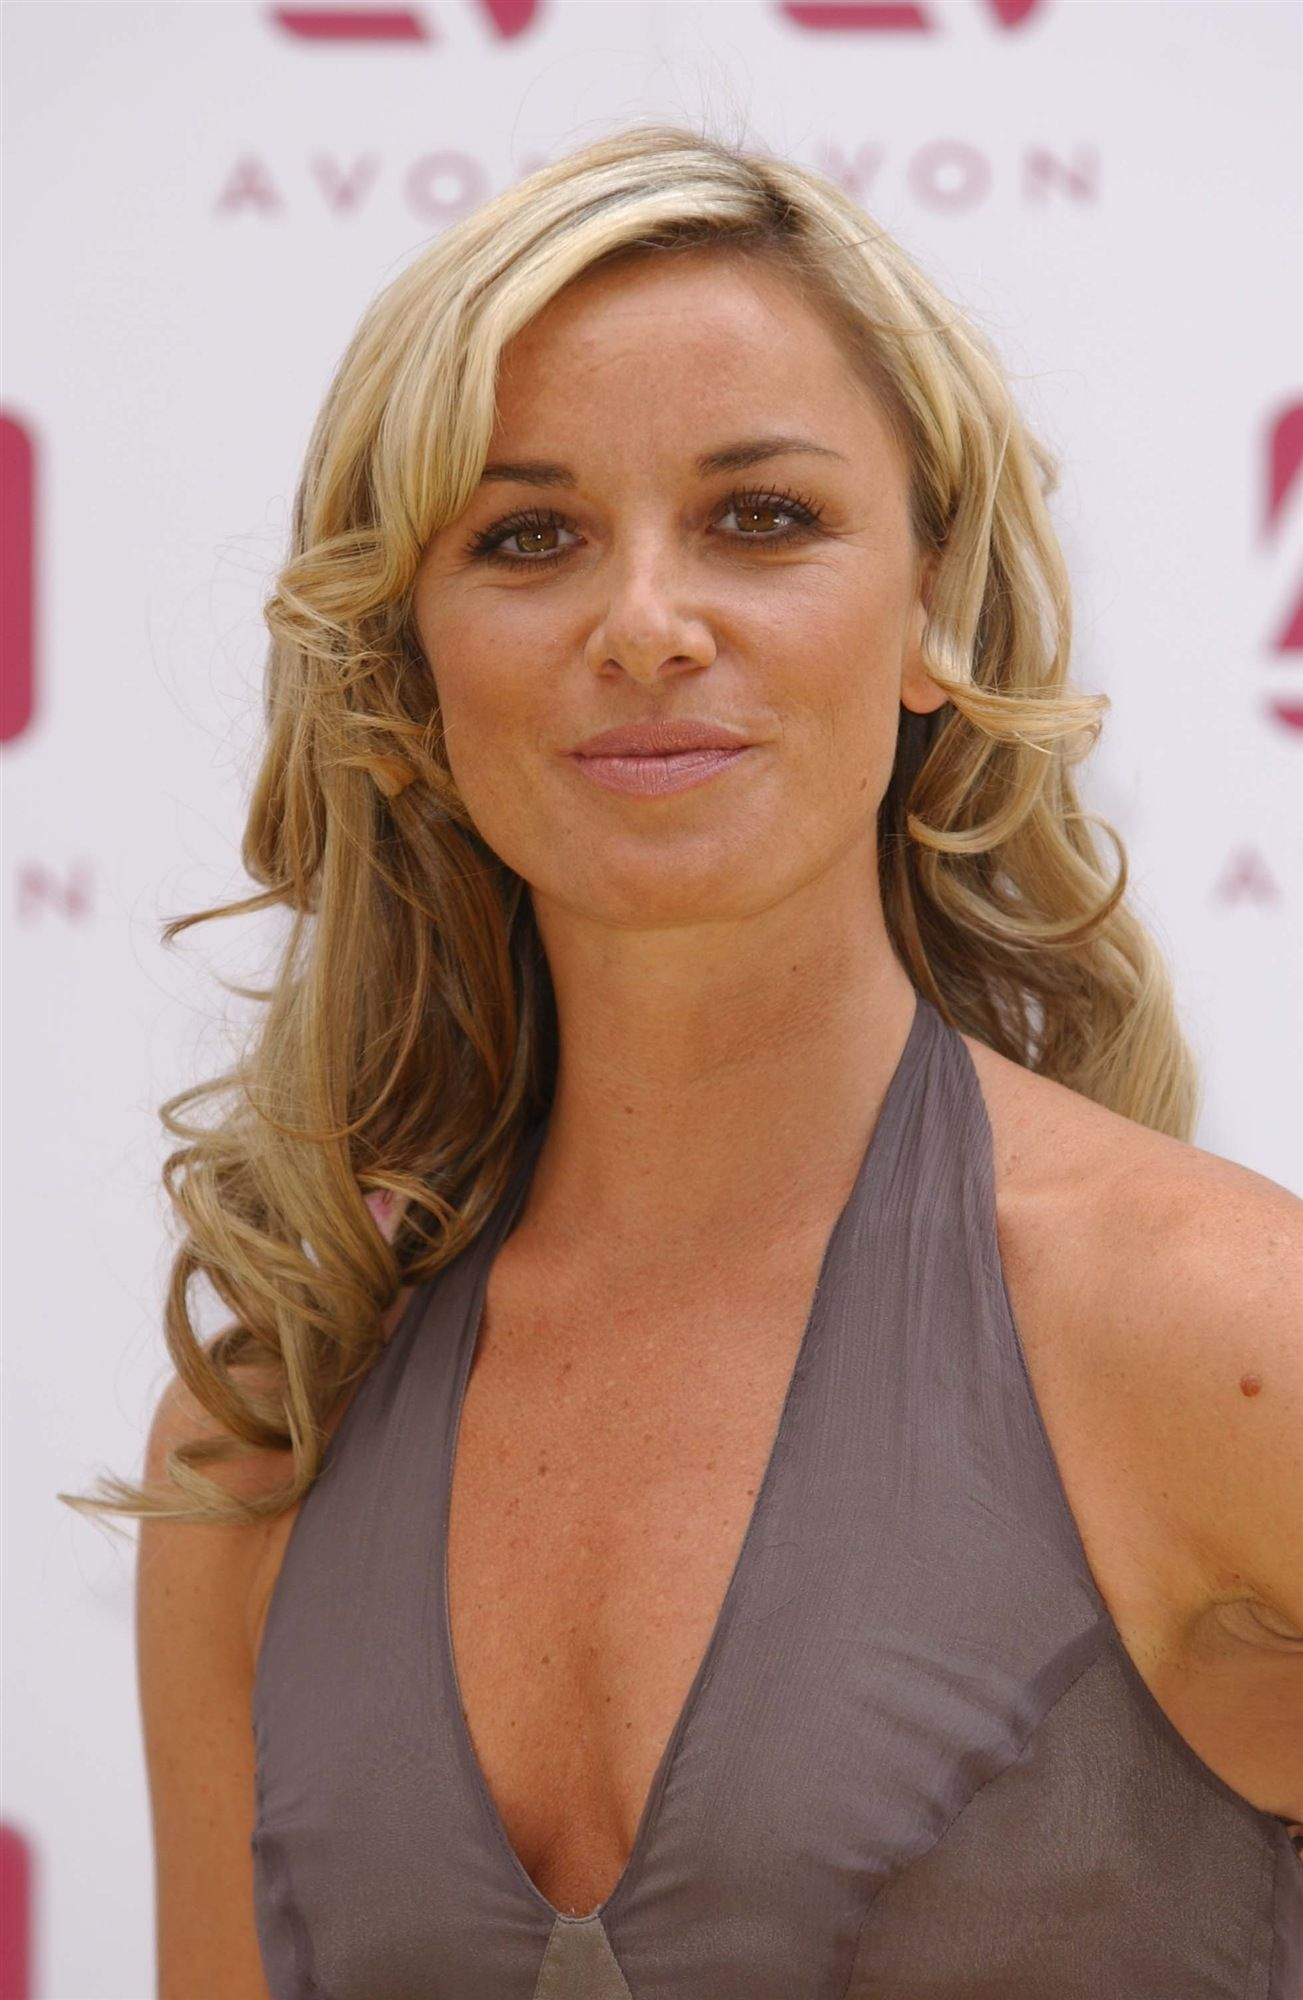 Celebrity Tamzin Outhwaite nudes (95 photos), Topless, Fappening, Instagram, see through 2018